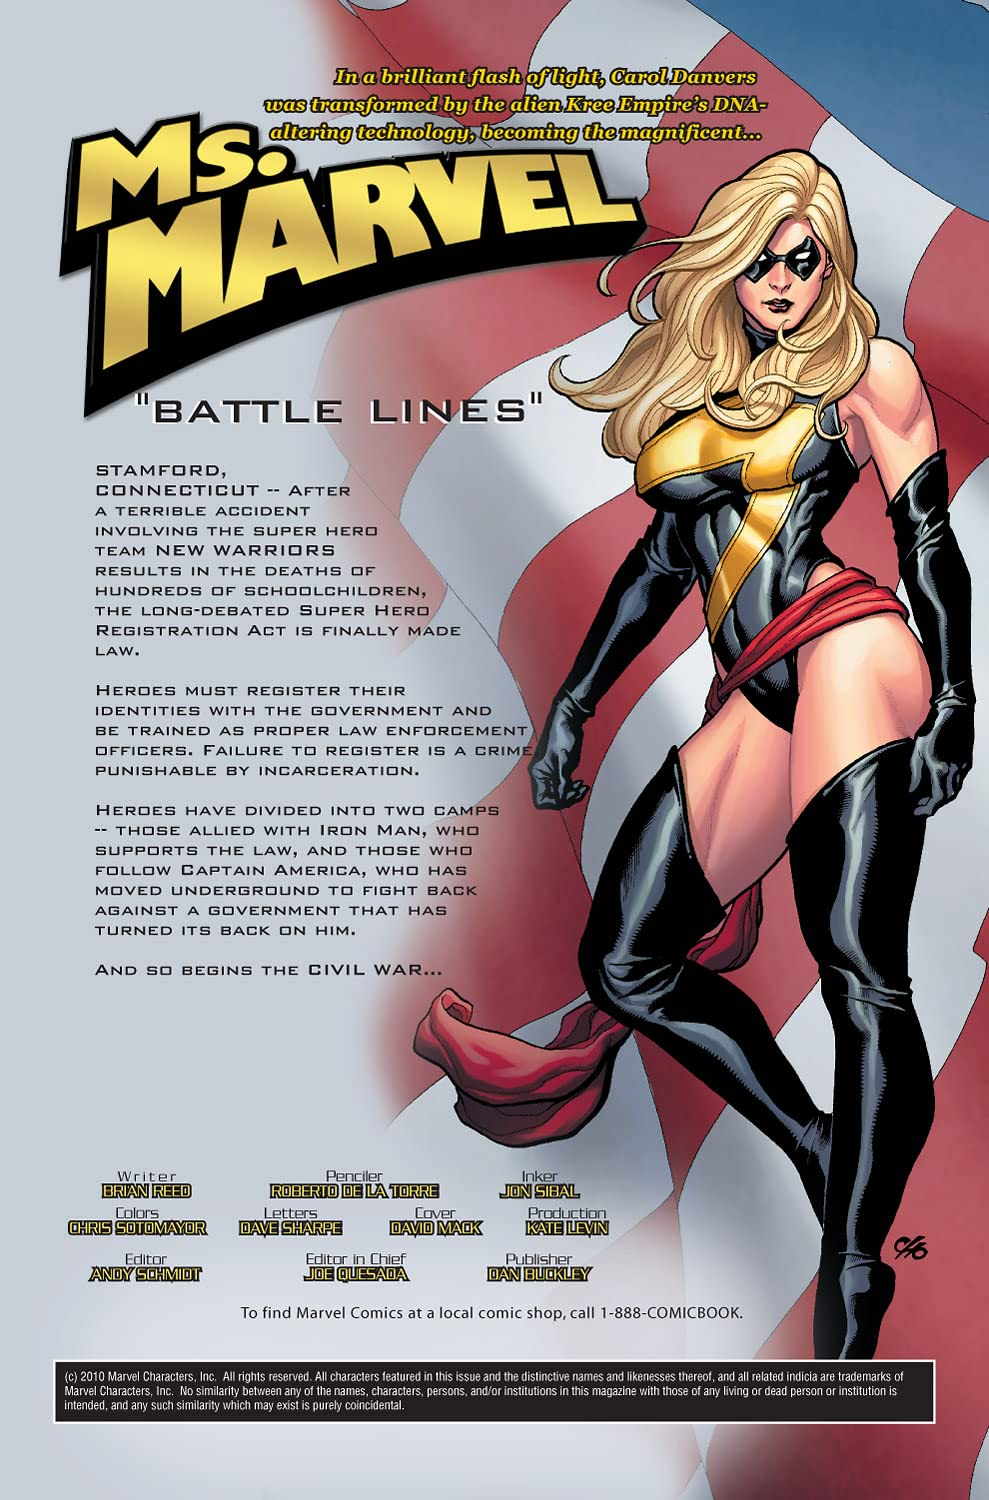 Ms. Marvel Vol. 2: Civil War